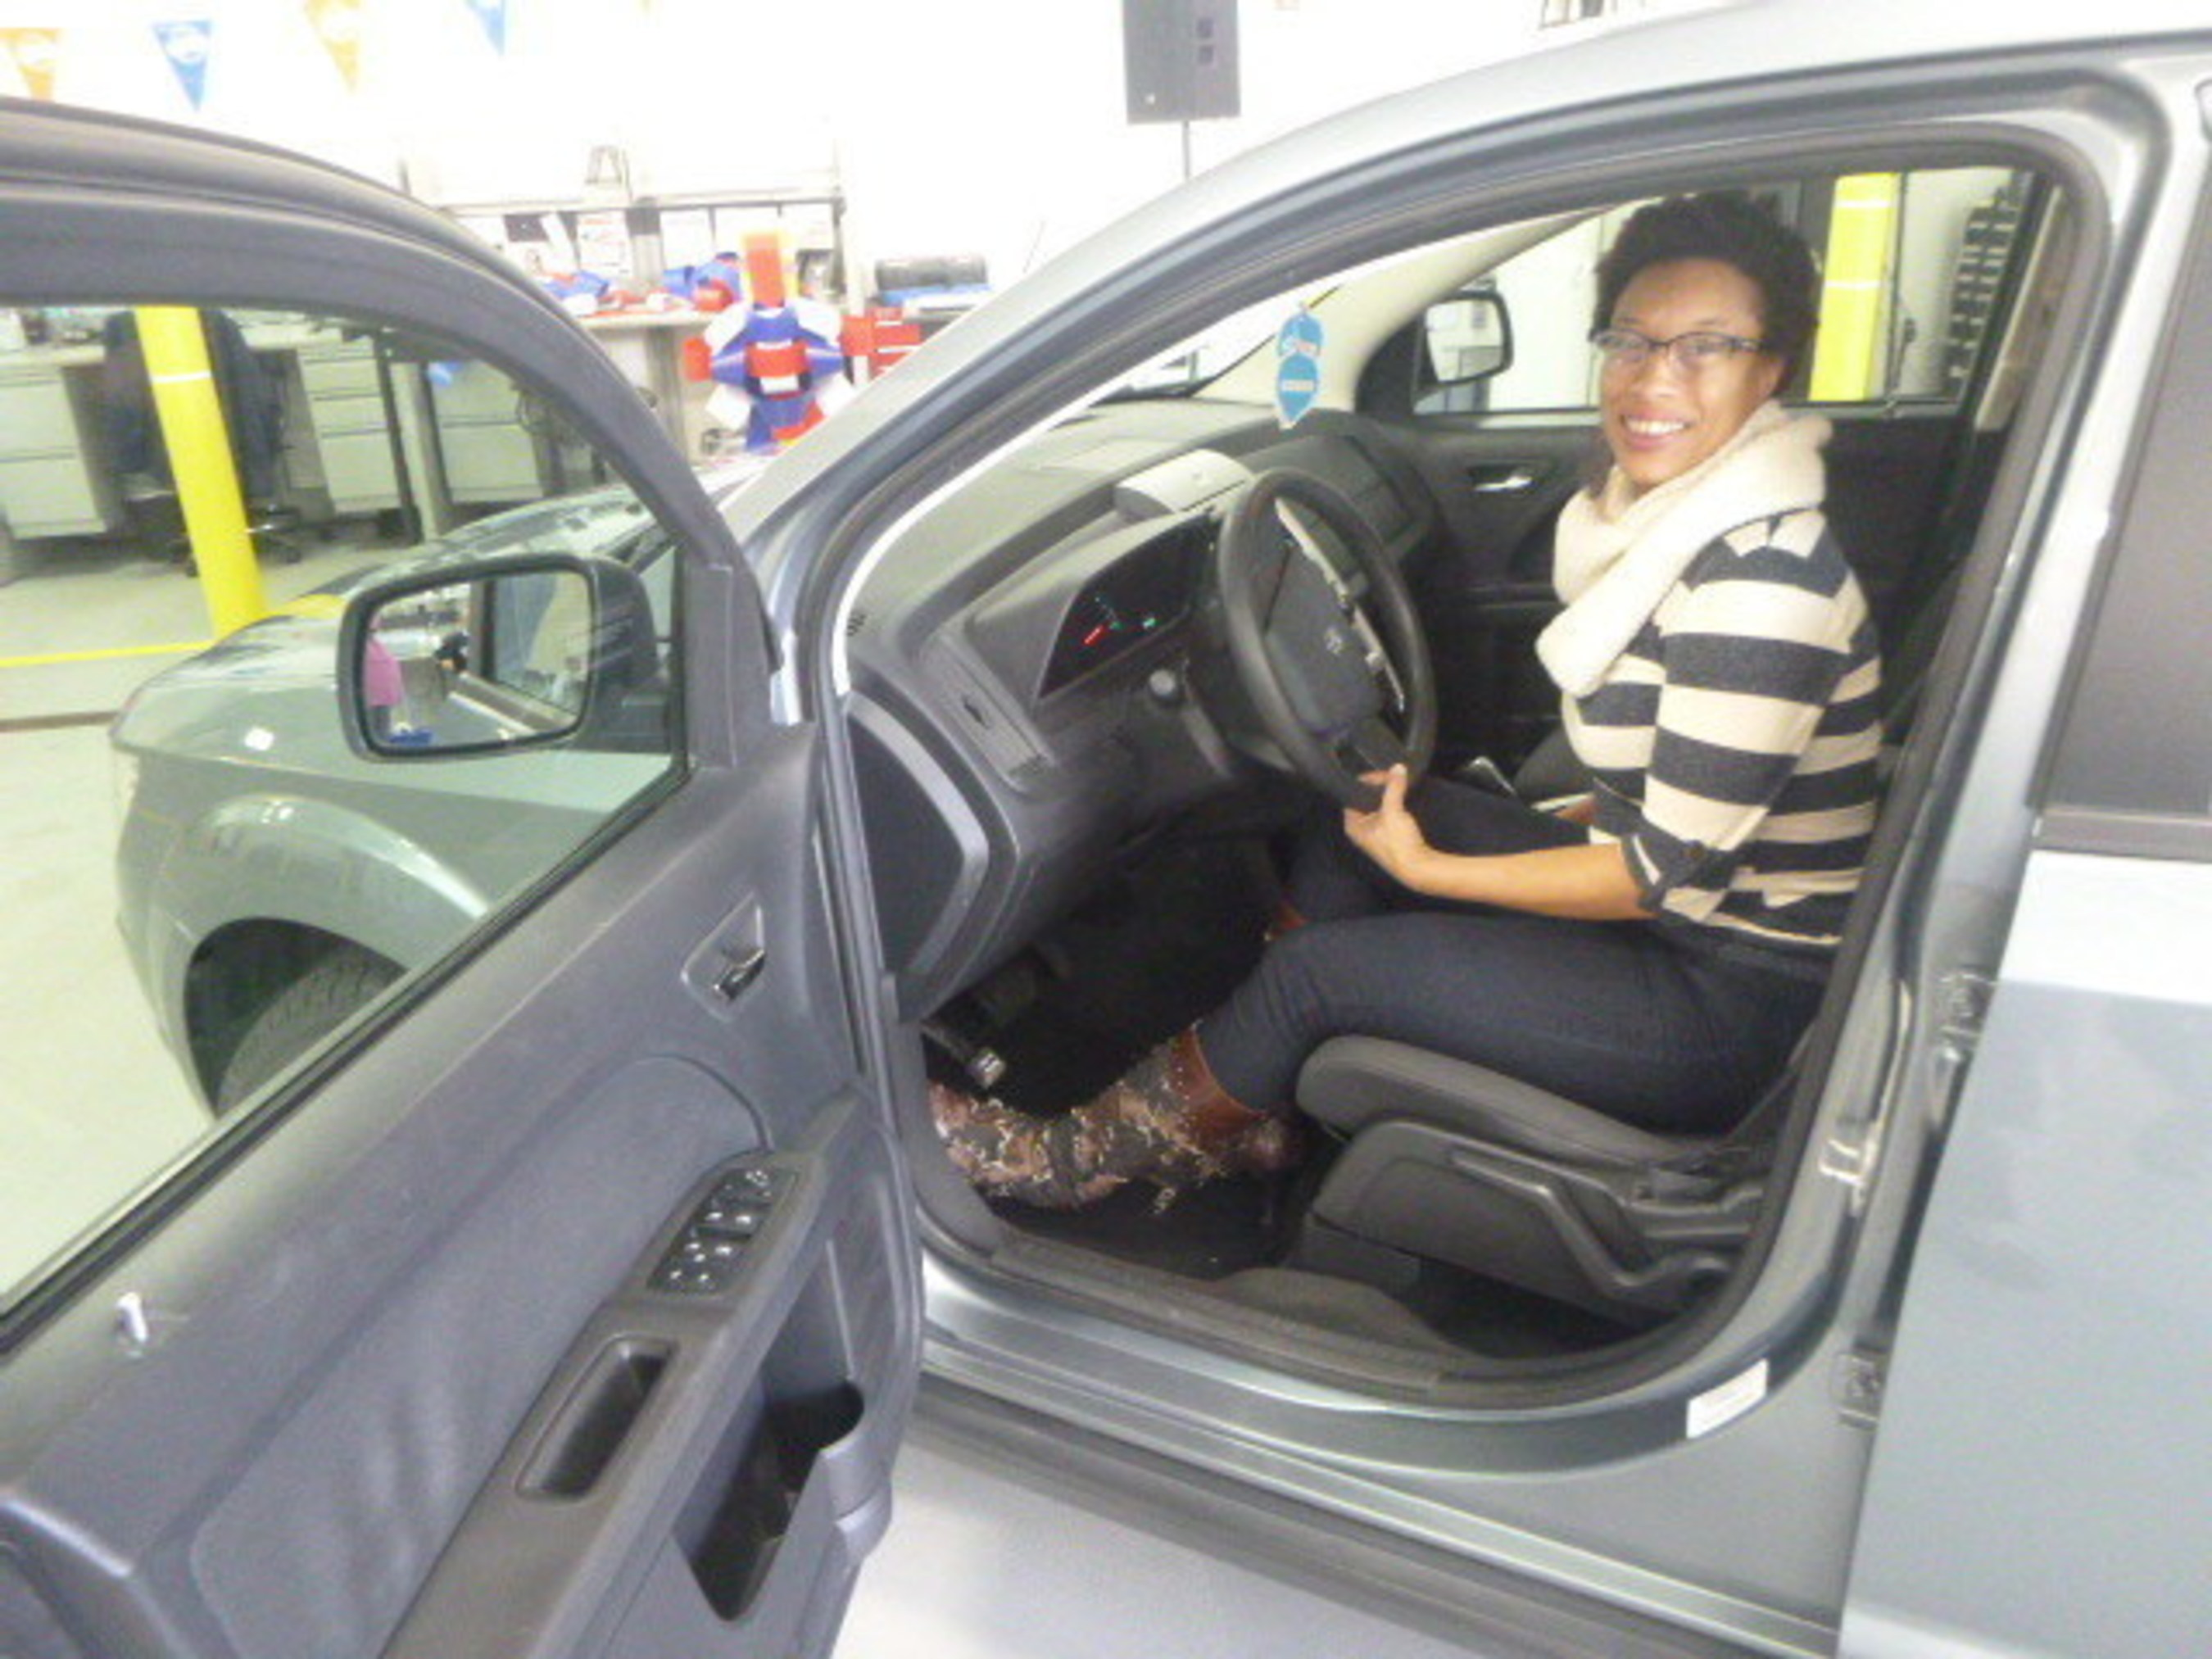 Navy veteran Terri Walker of St. Louis was given a 2010 Dodge Journey. Walker plans to use her new vehicle to help transport her sons to school, drive to her job as a private chef and caterer, and visit her mother.